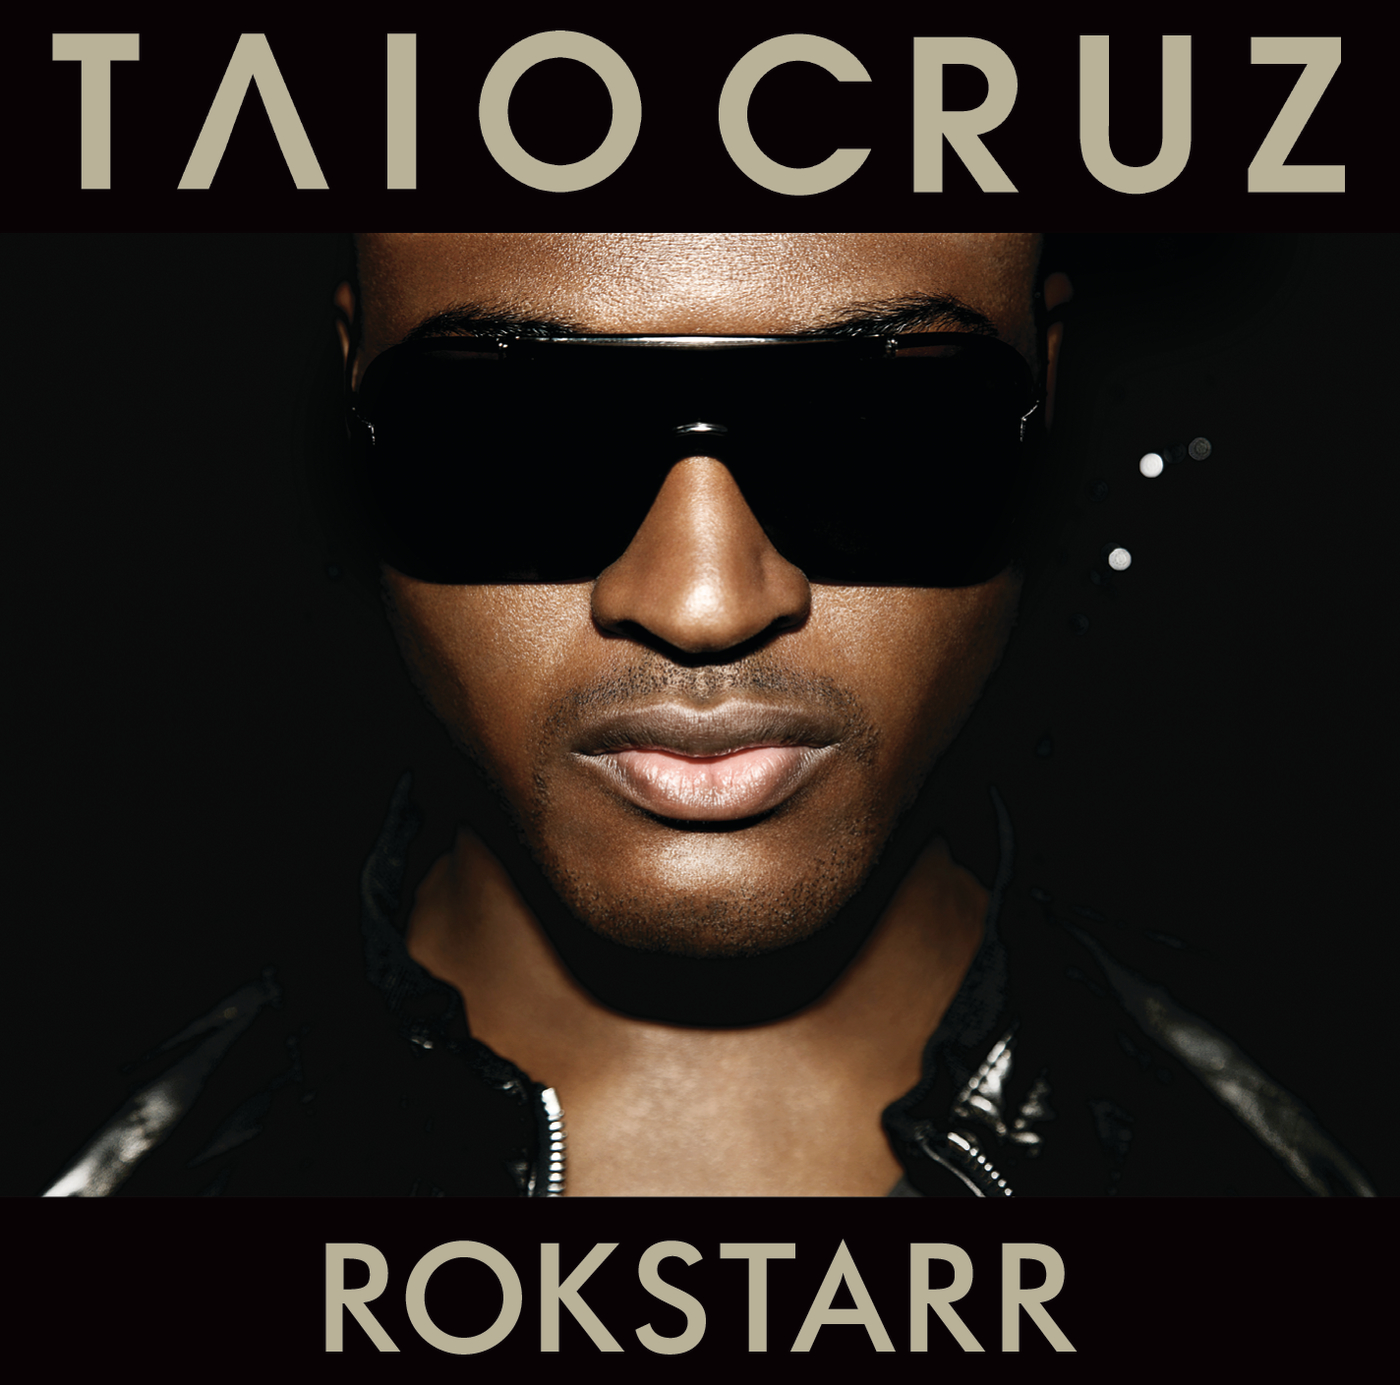 Taio cruz feat. Kylie minogue higher music video the hype factor.